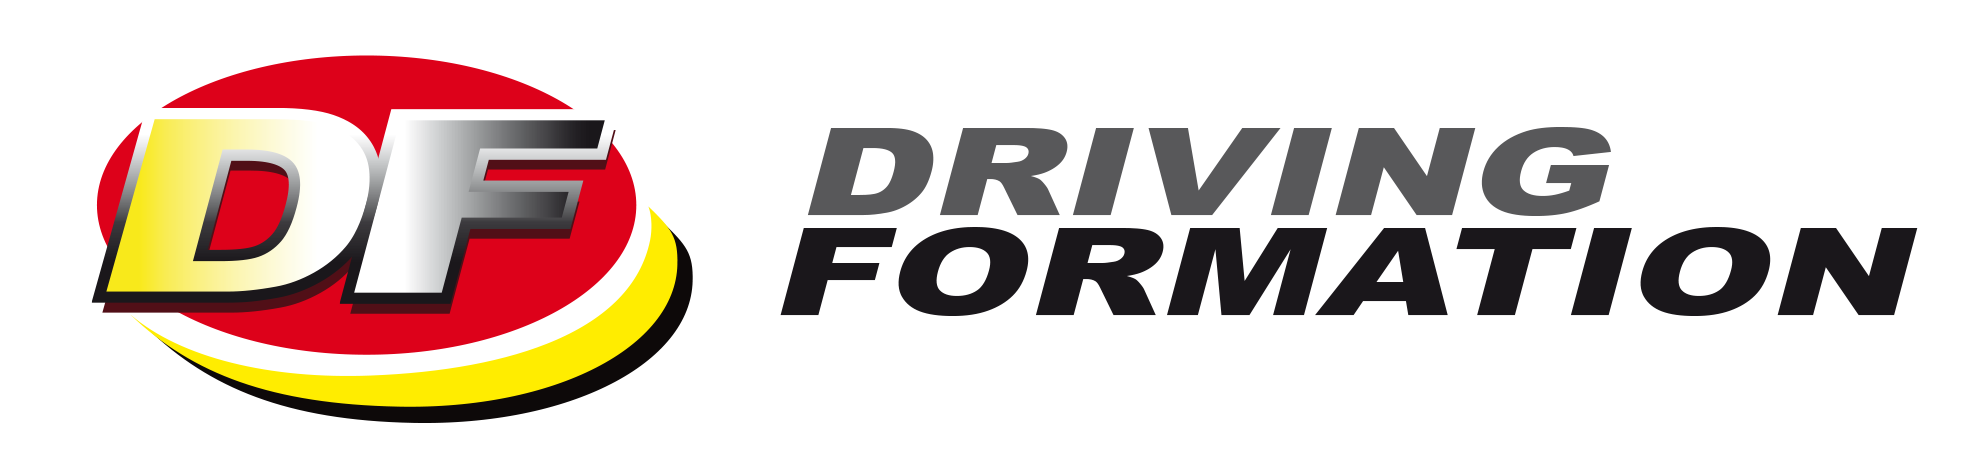 logo-driving-formation